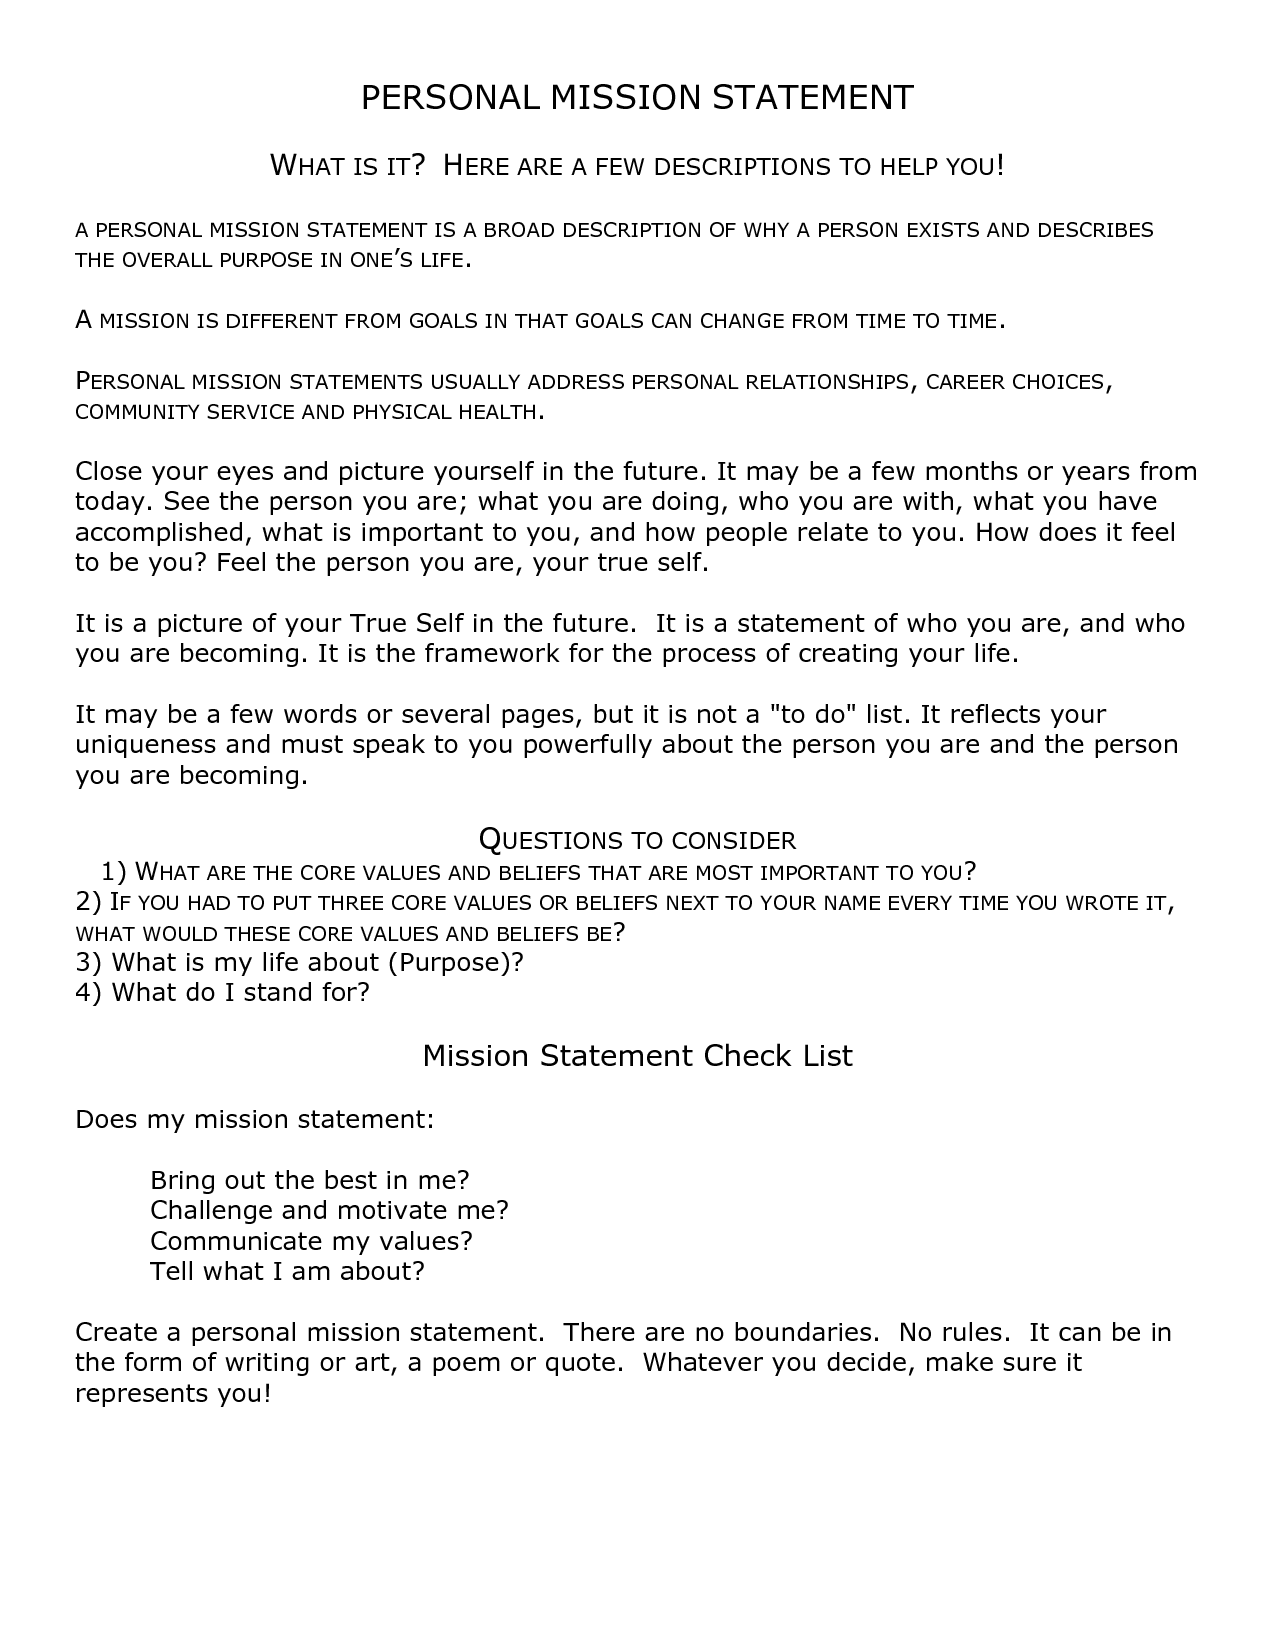 how to write a statement sample personal statement statement of purpose lean homebuilding wordpress com sample personal statement statement of purpose lean homebuilding wordpress